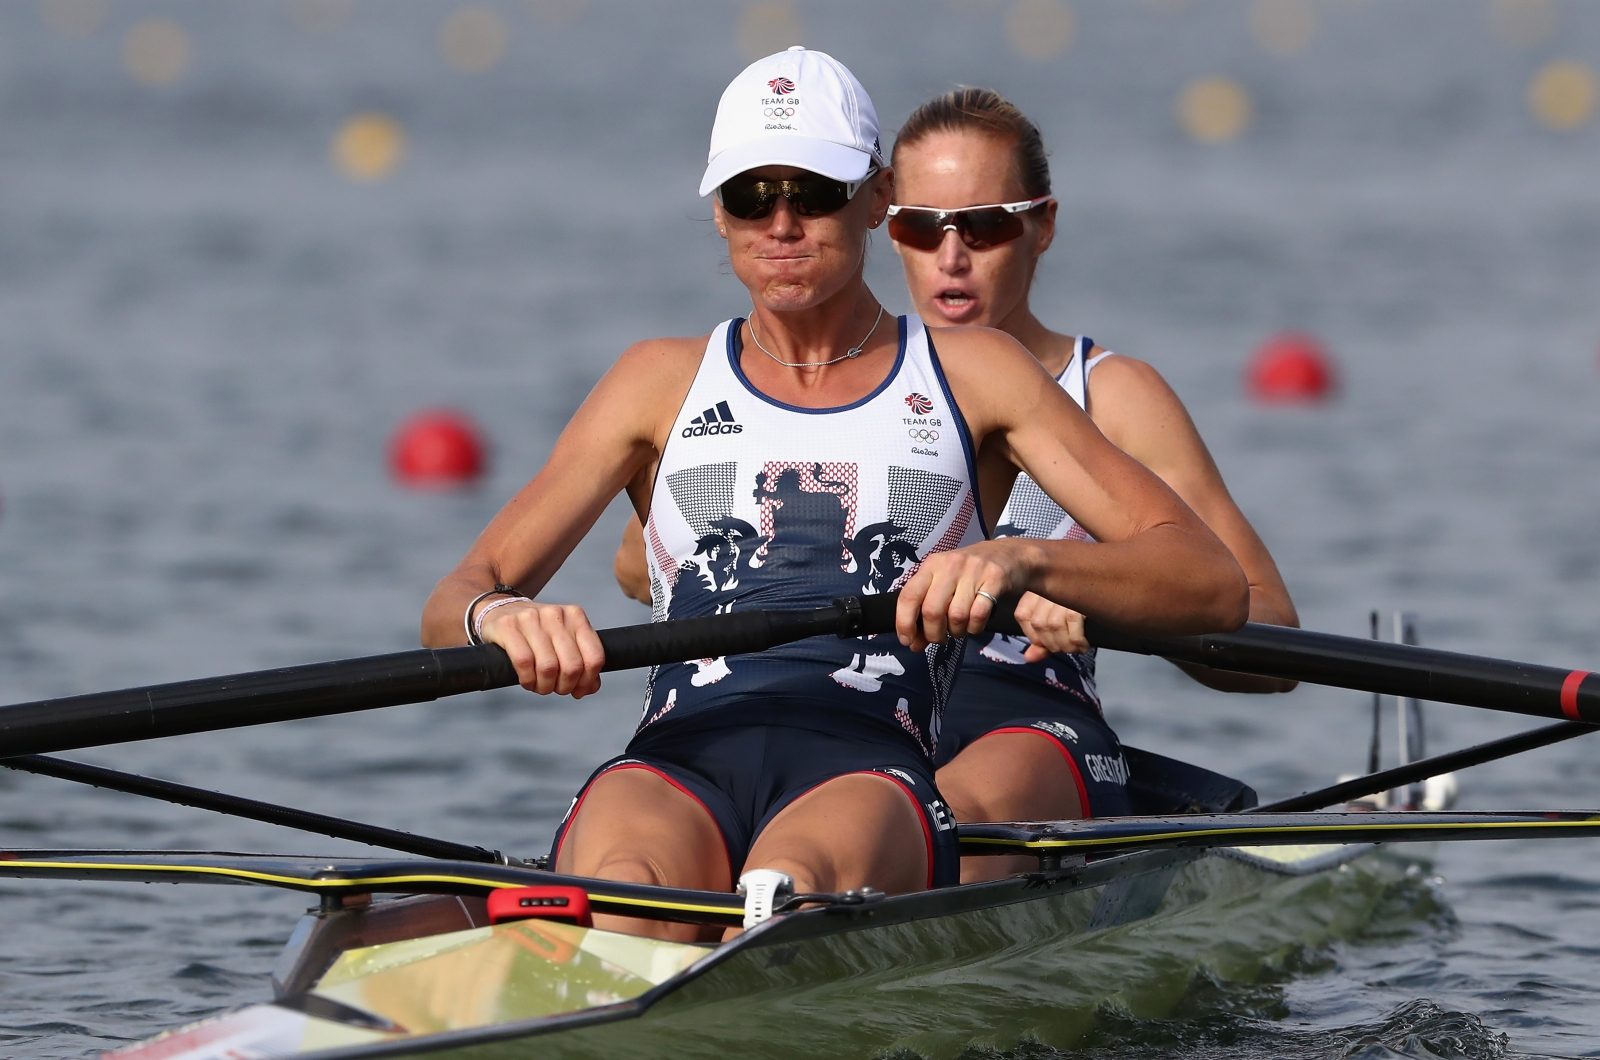 Olympics-Rowing-Britannia rules the waves with two golds